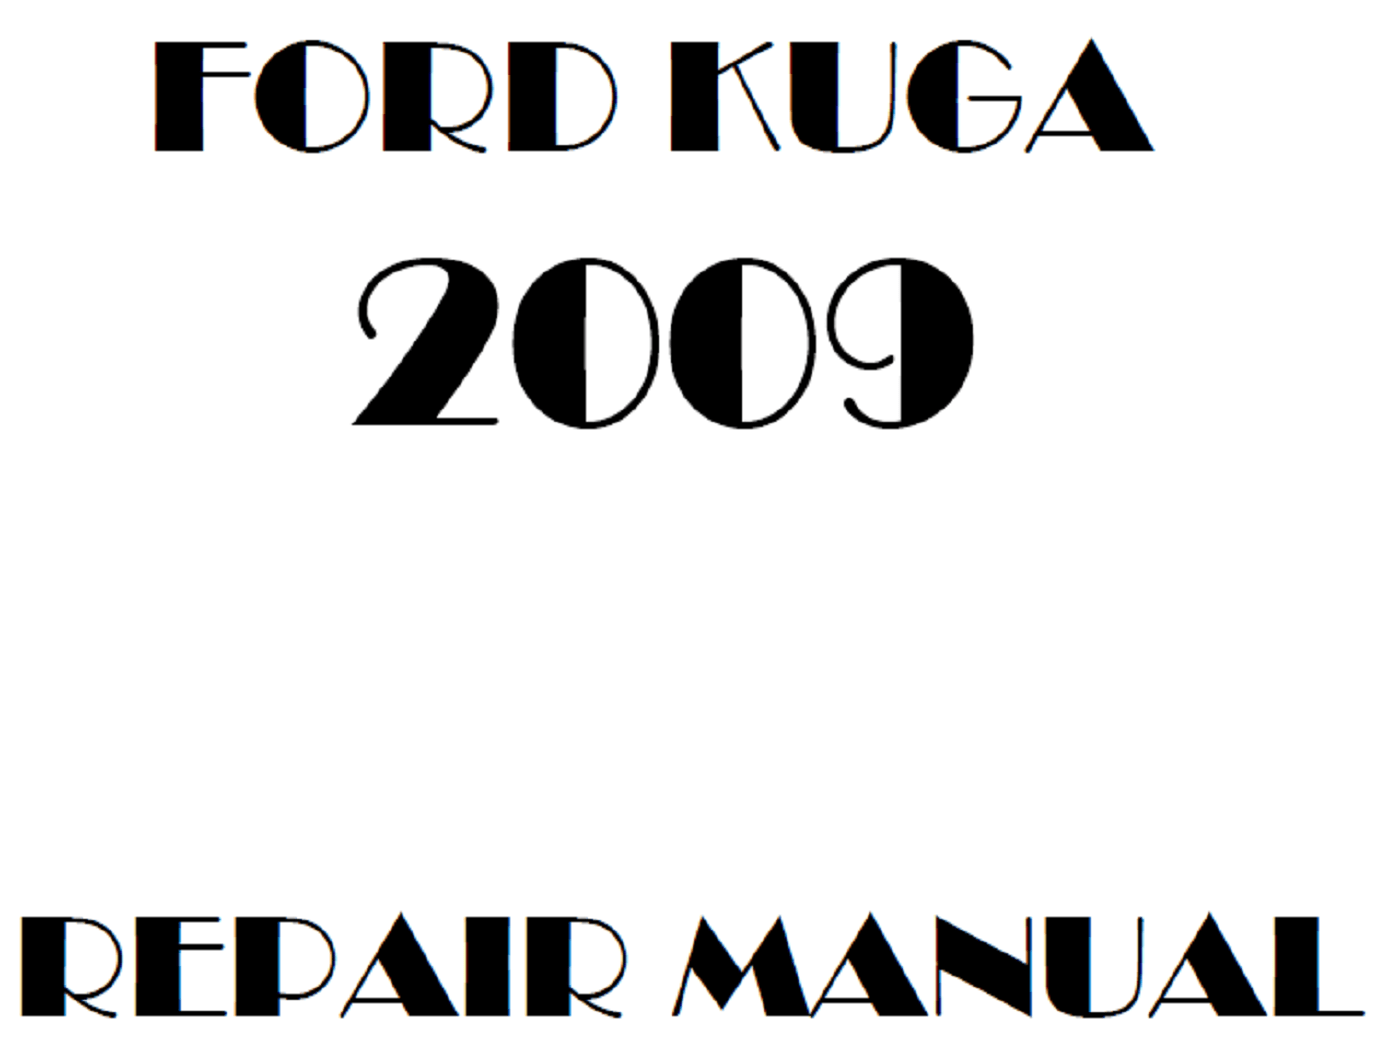 2009 Ford Kuga repair manual